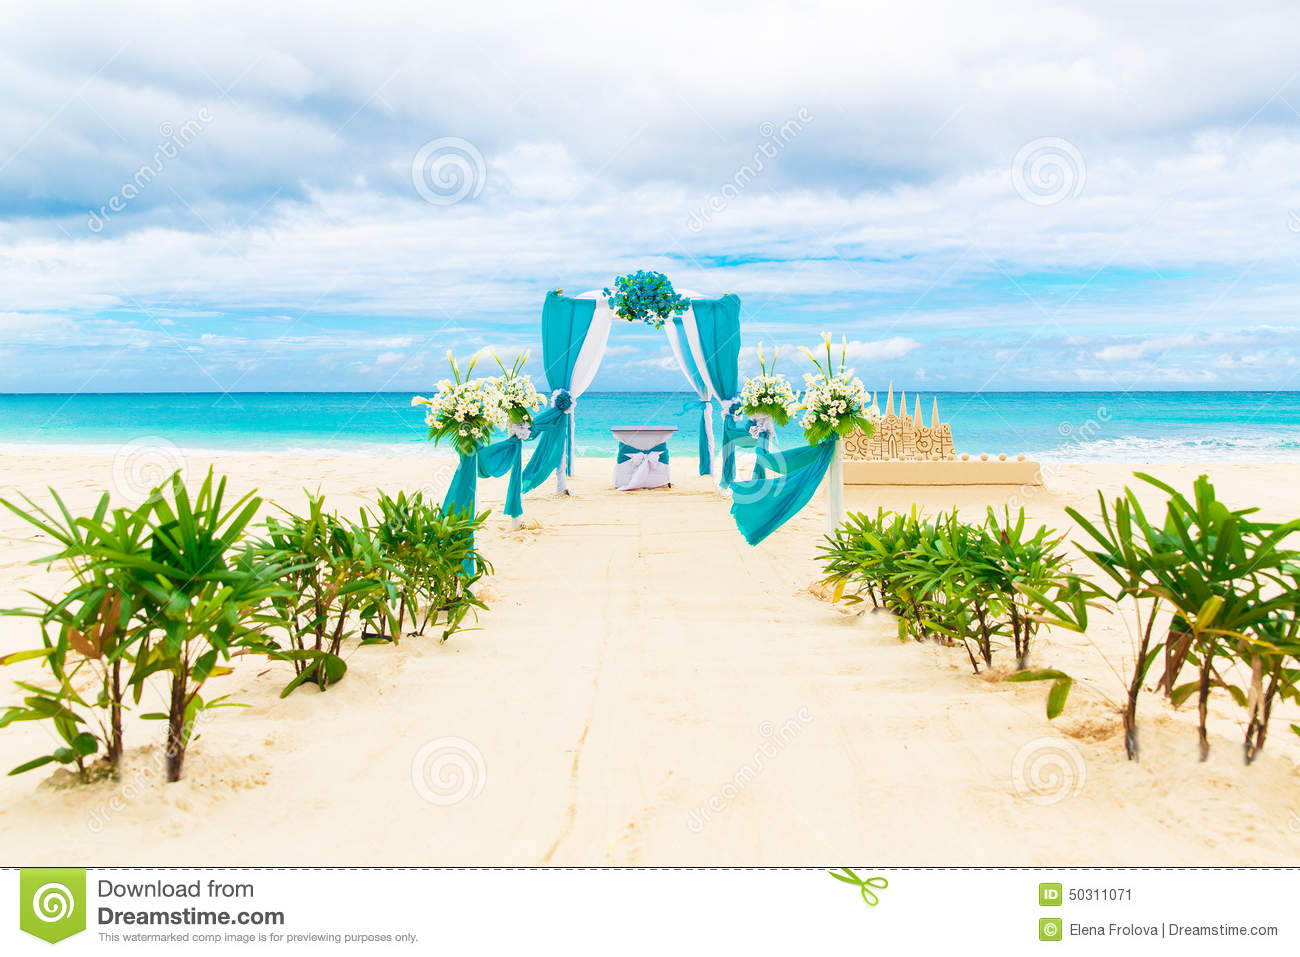 Wedding on the beach - Wedding On The Beach Wedding Arch Decorated With Flowers On Tr Stock Image